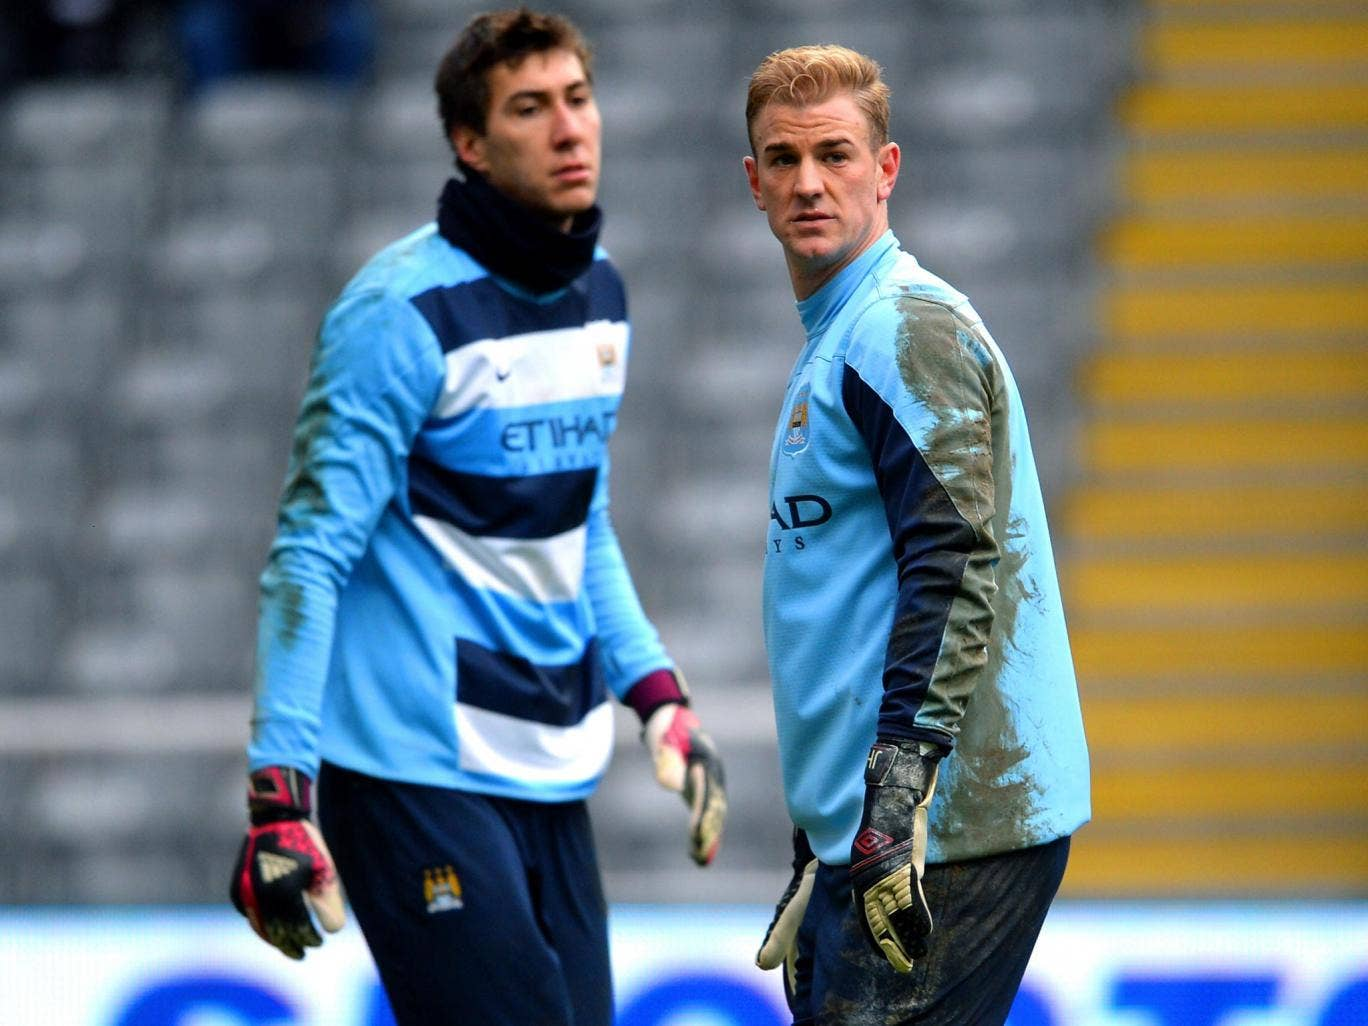 Costel Pantilimon and Joe Hart (right) are vying to play in goal for Manchester City tomorrow